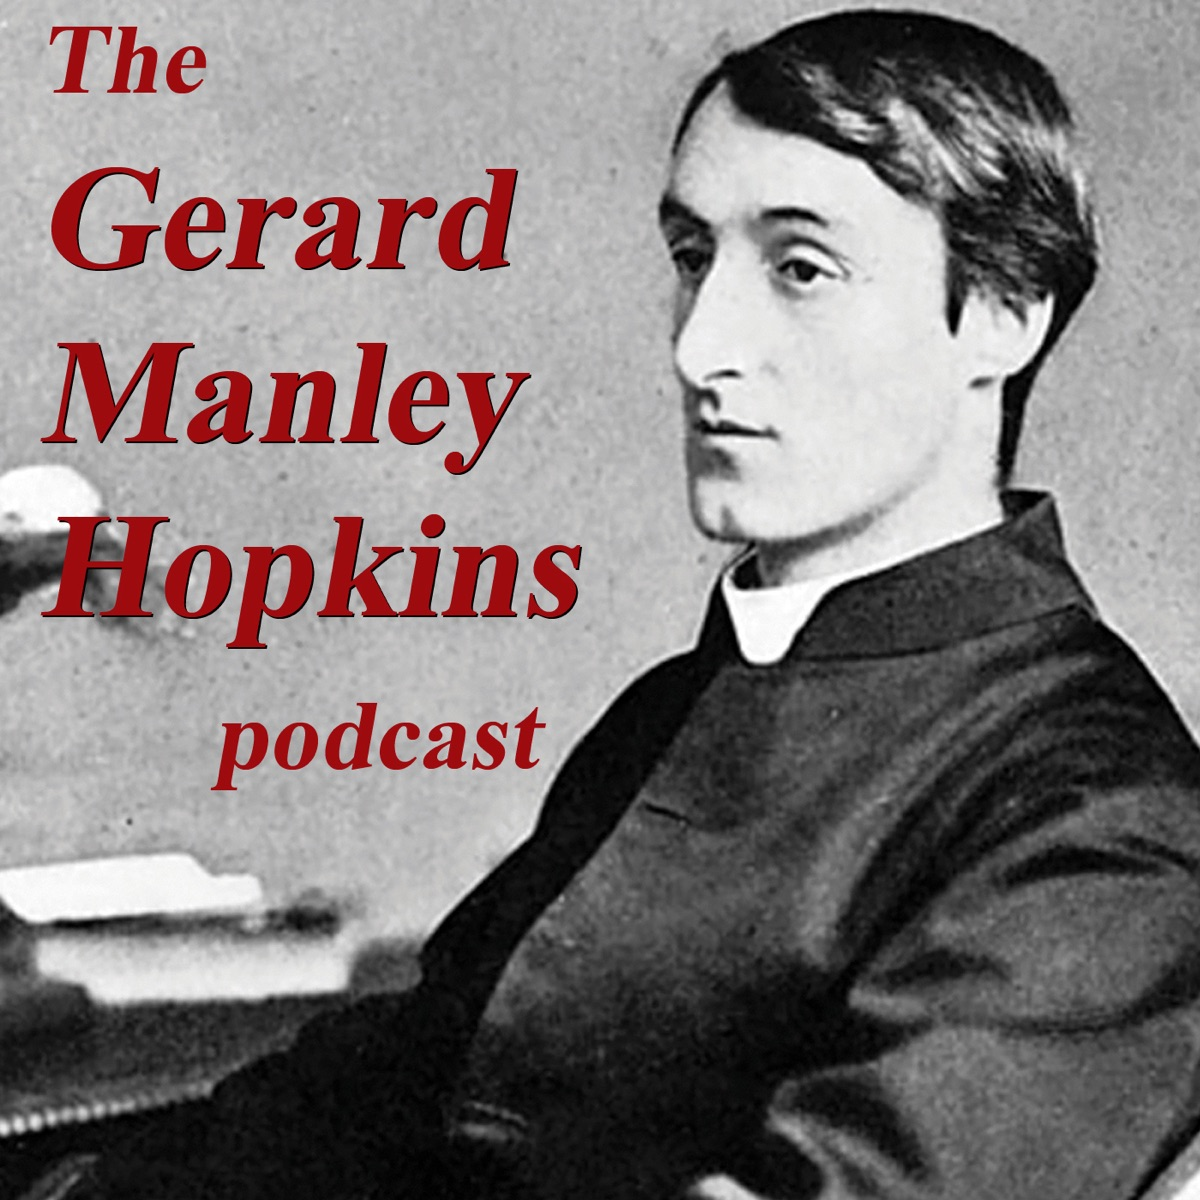 gerard nanley hopkins poem gods grandeur Gerard manley hopkins is one of the three or four greatest poets of the victorian era he is regarded by different readers as the greatest victorian poet of religion, of nature, or of melancholy however, because his style was so radically different from that of.